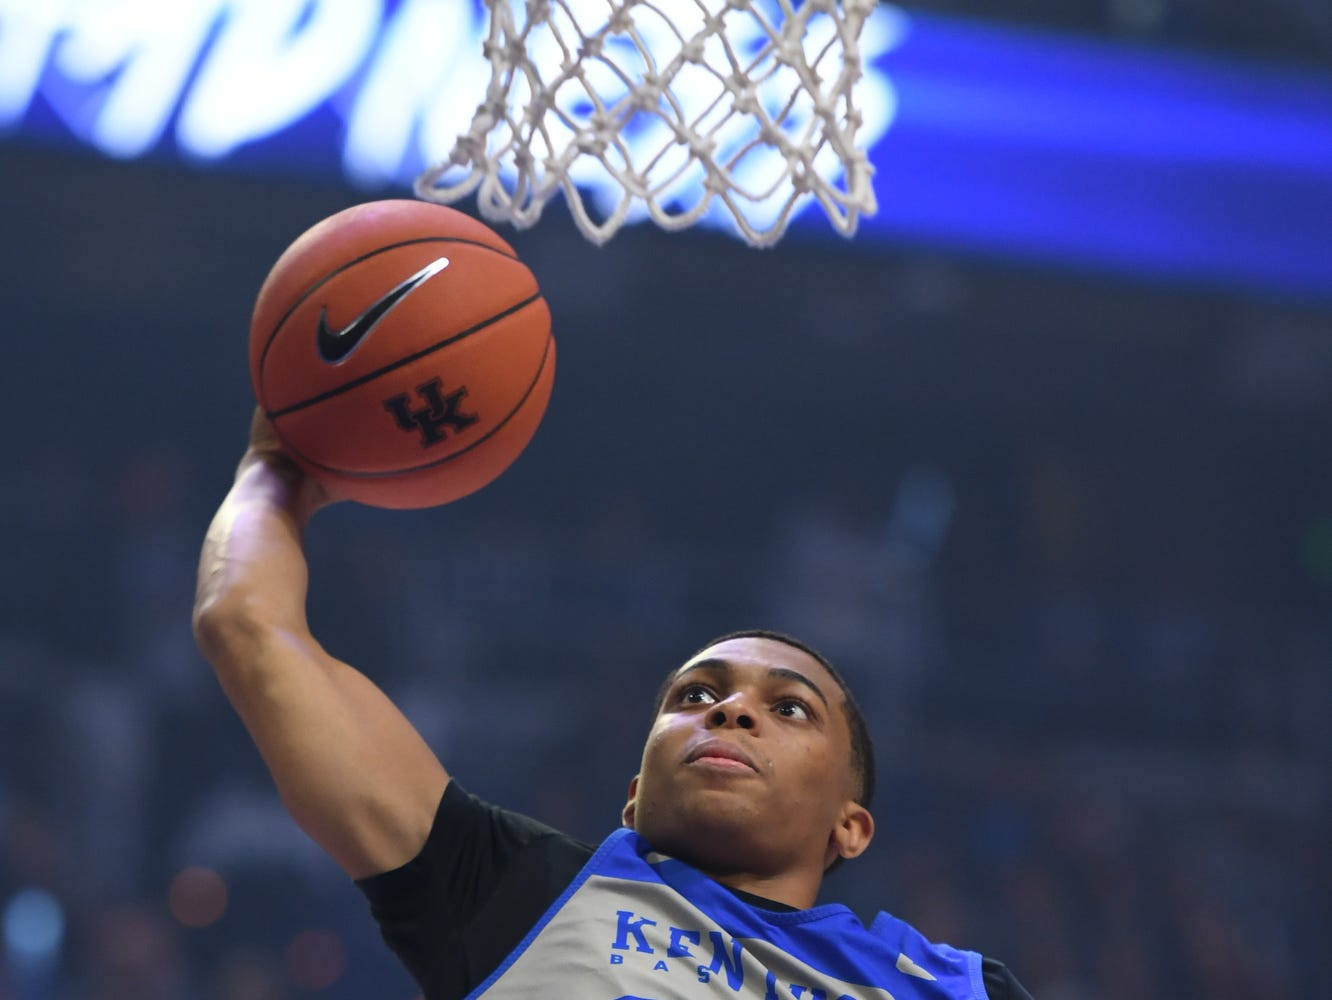 Freshman Keldon Johnson dunks during the University of Kentucky basketball's annual Big Blue Madness at Rupp Arena in Lexington, Kentucky on Friday, Oct. 12, 2018.